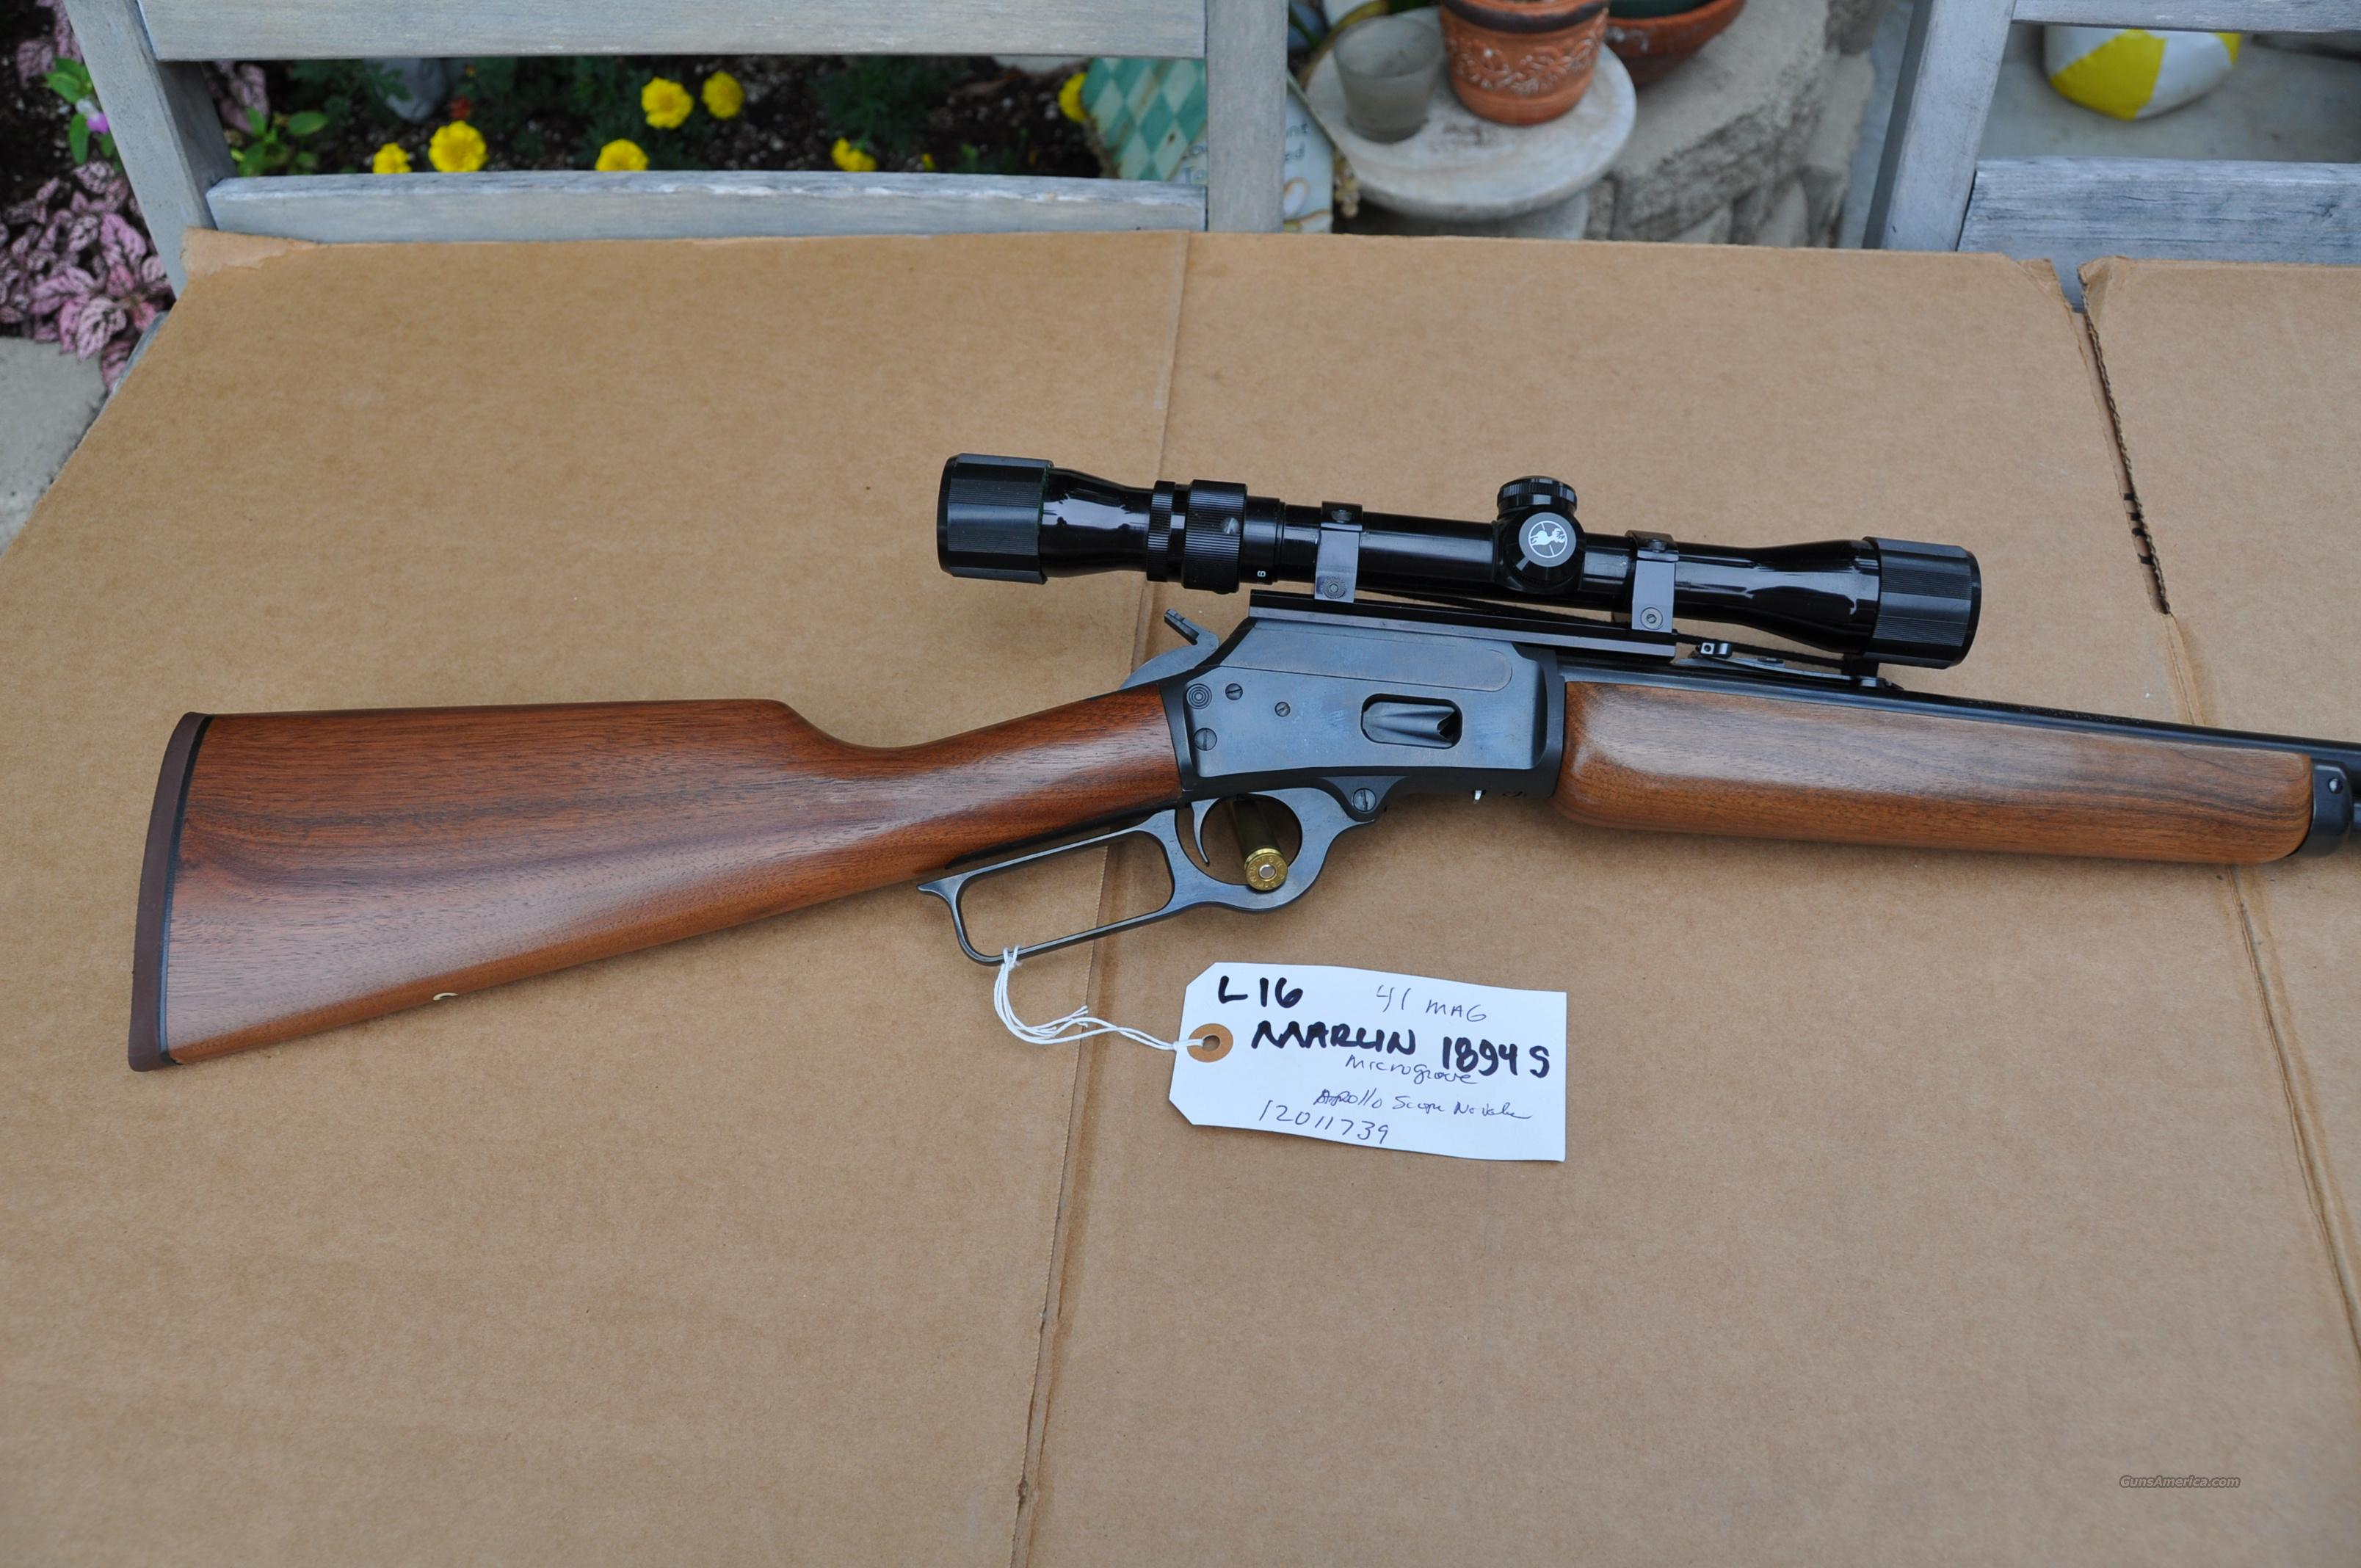 Marlin 1894S 41 Magnum in excellent condition with scope  estate sale  Guns > Rifles > Marlin Rifles > Modern > Lever Action